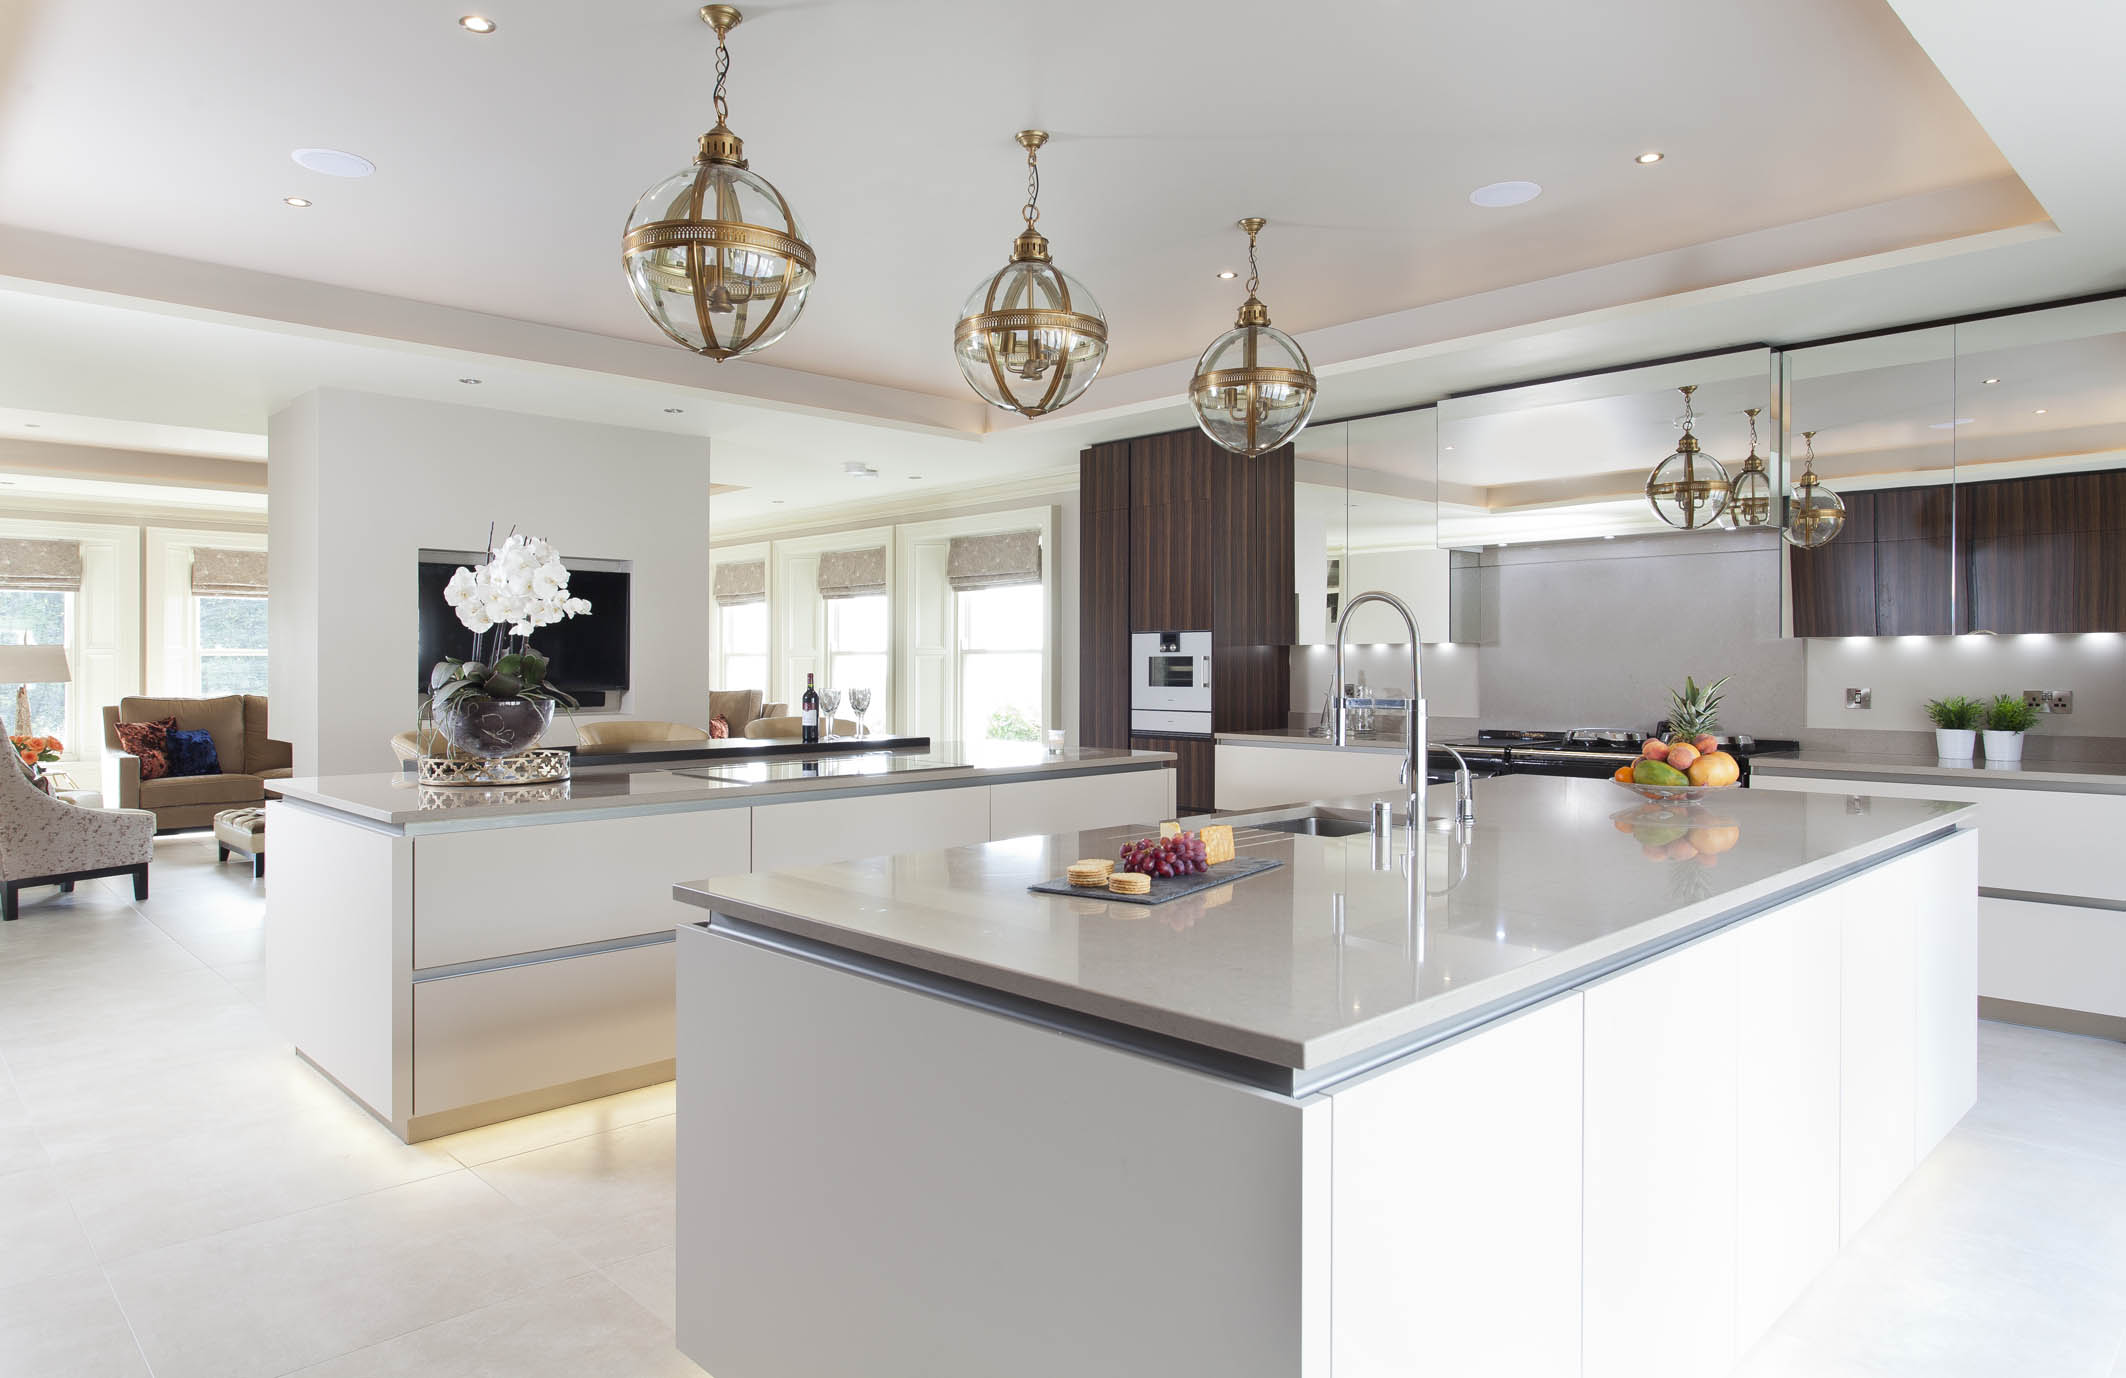 Handmade Kitchens Ireland   Luxury Handpainted Kitchens In Dublin, Belfast  And Dungannon